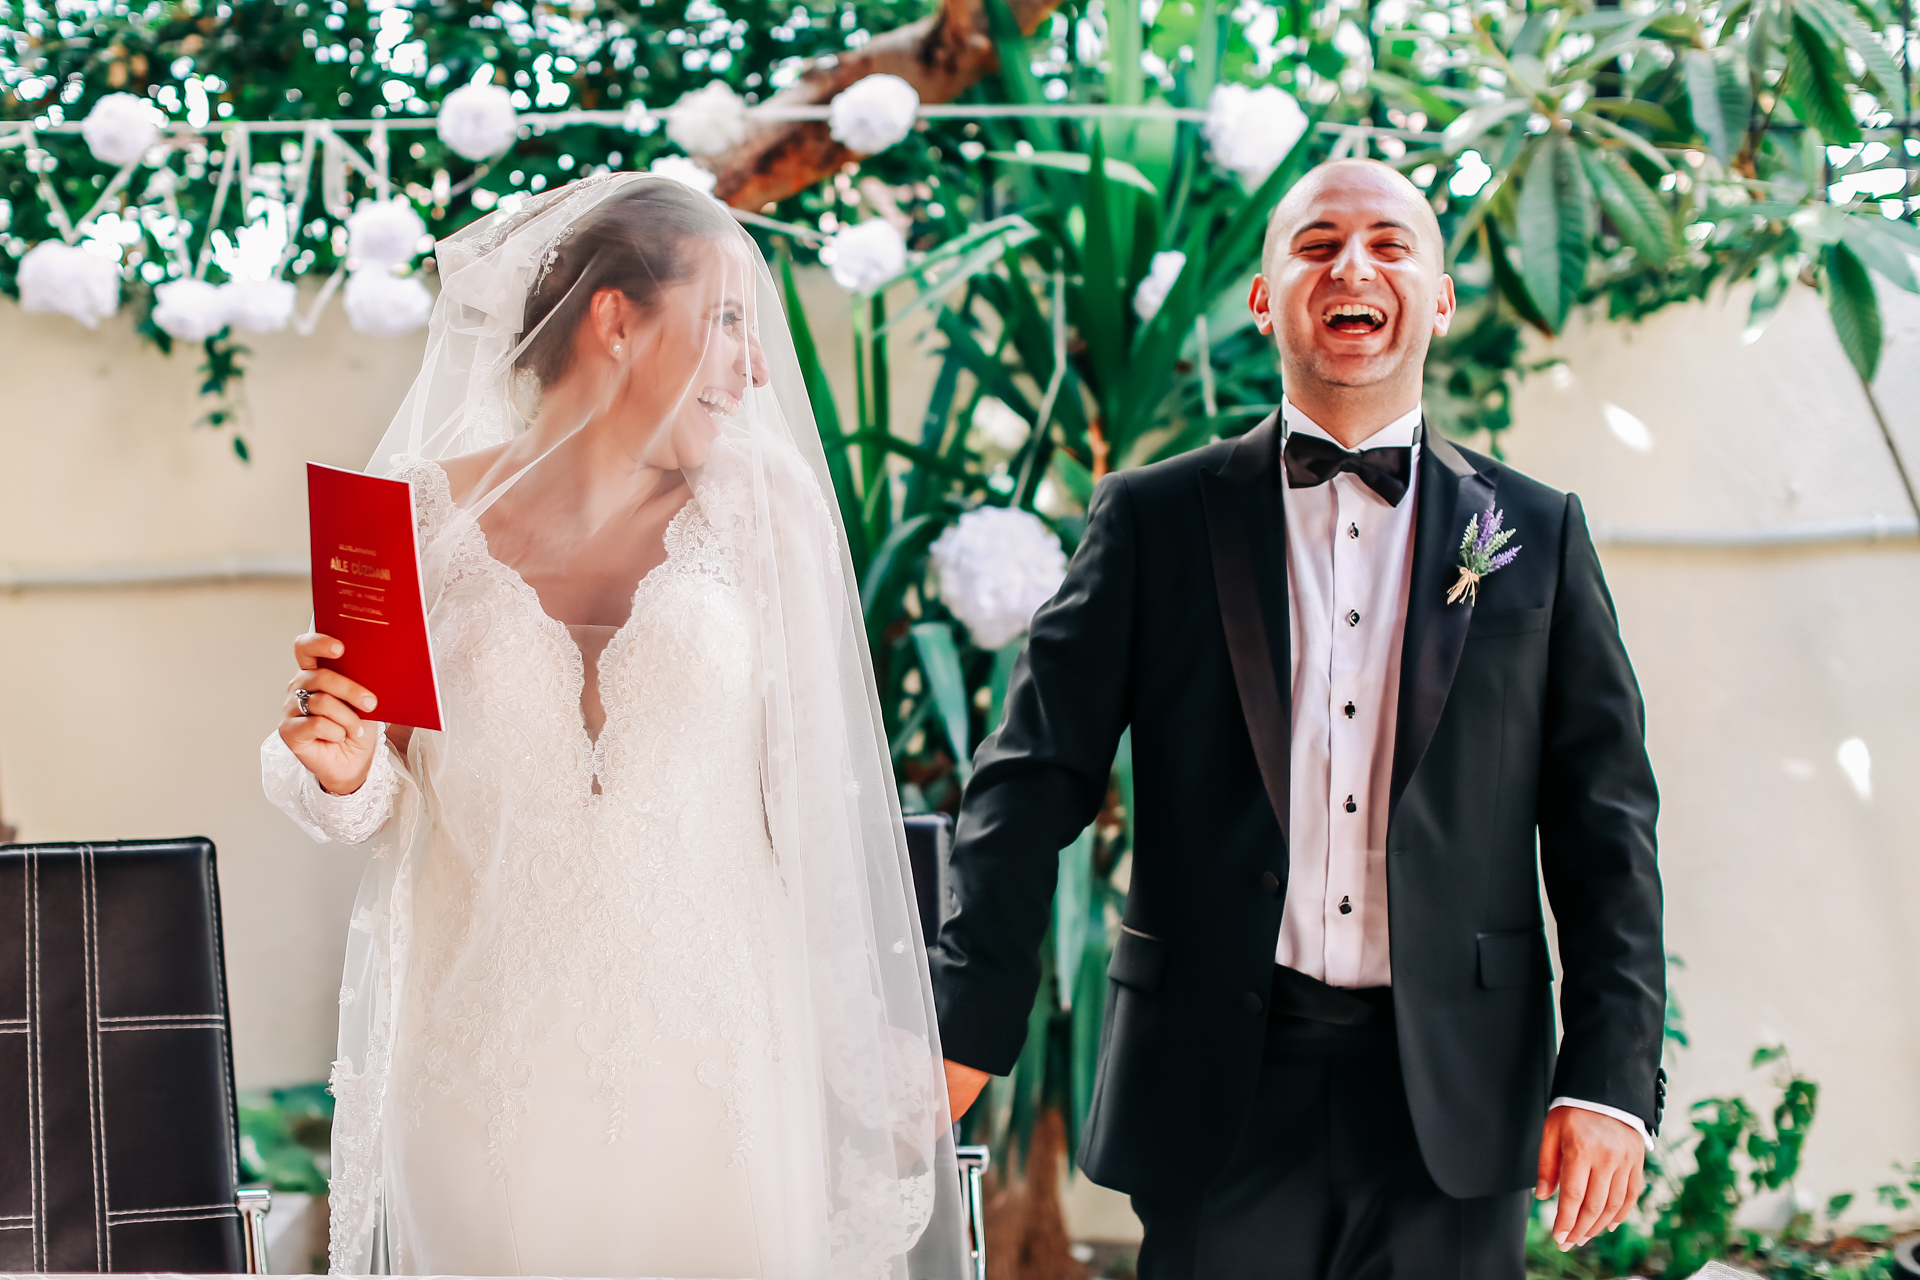 Greece Elopement Ceremony Picture | The bride smiles at the groom from behind her veil